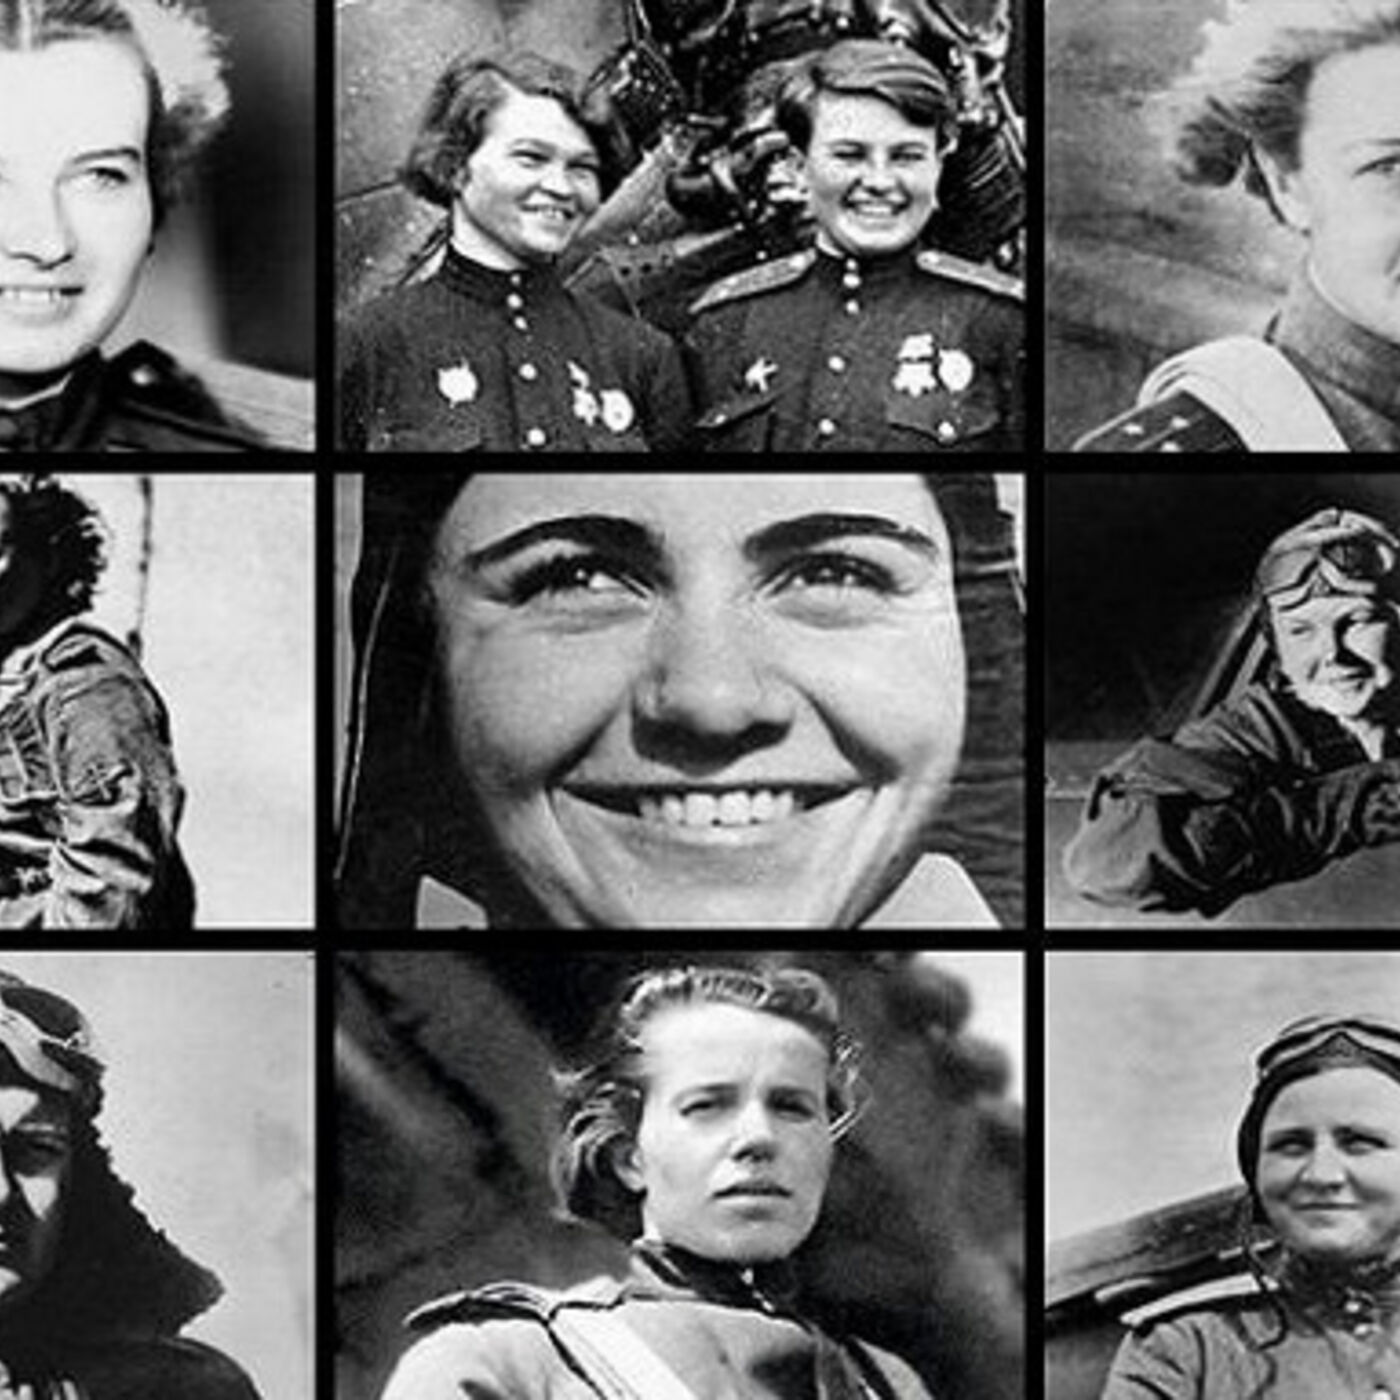 NIGHT WITCHES: WHOOSHING BY, DROPPING BOMBS